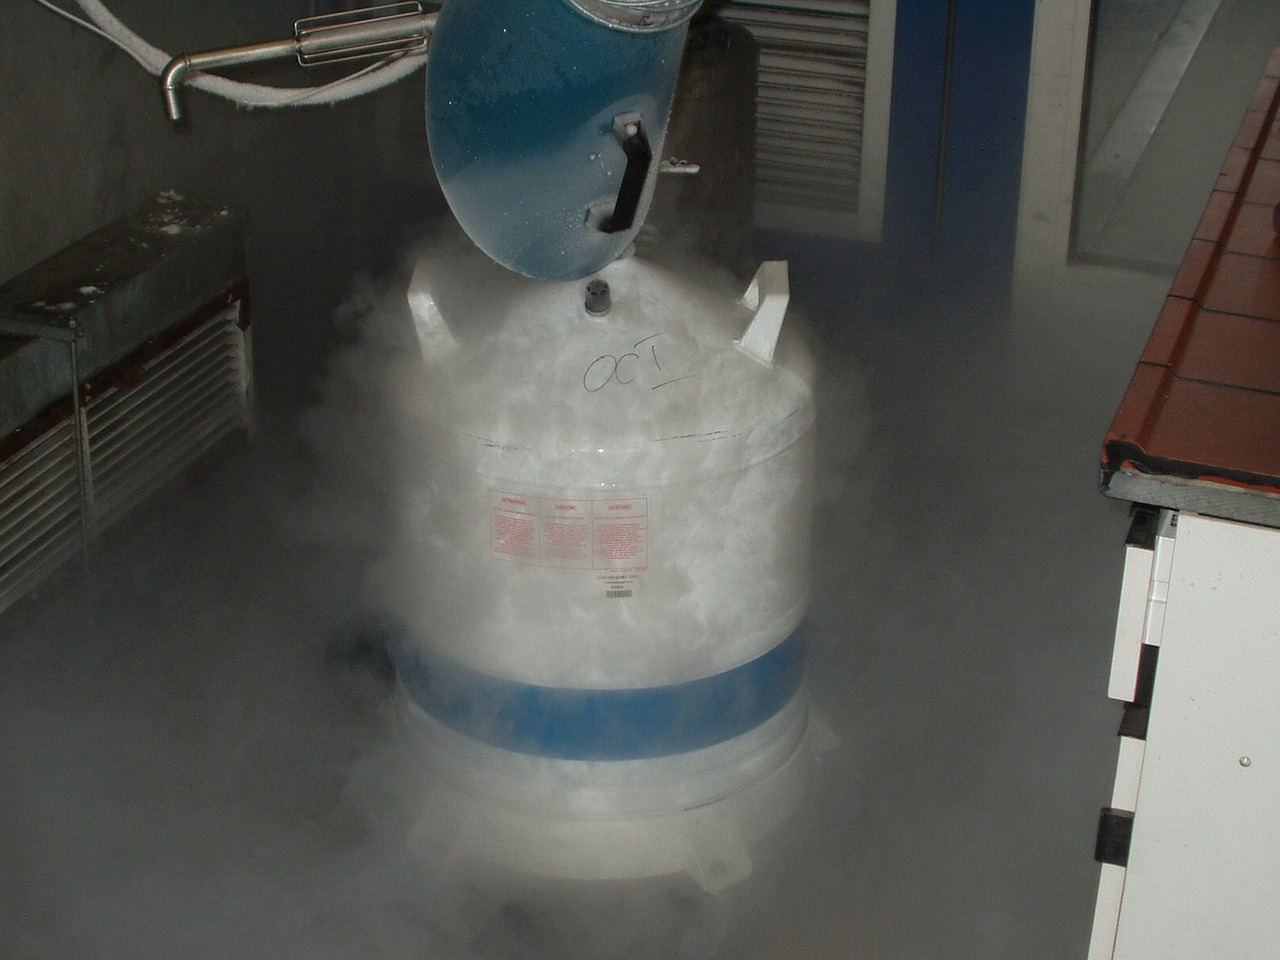 nitrogen being poured into a container causing white smoke to fall out